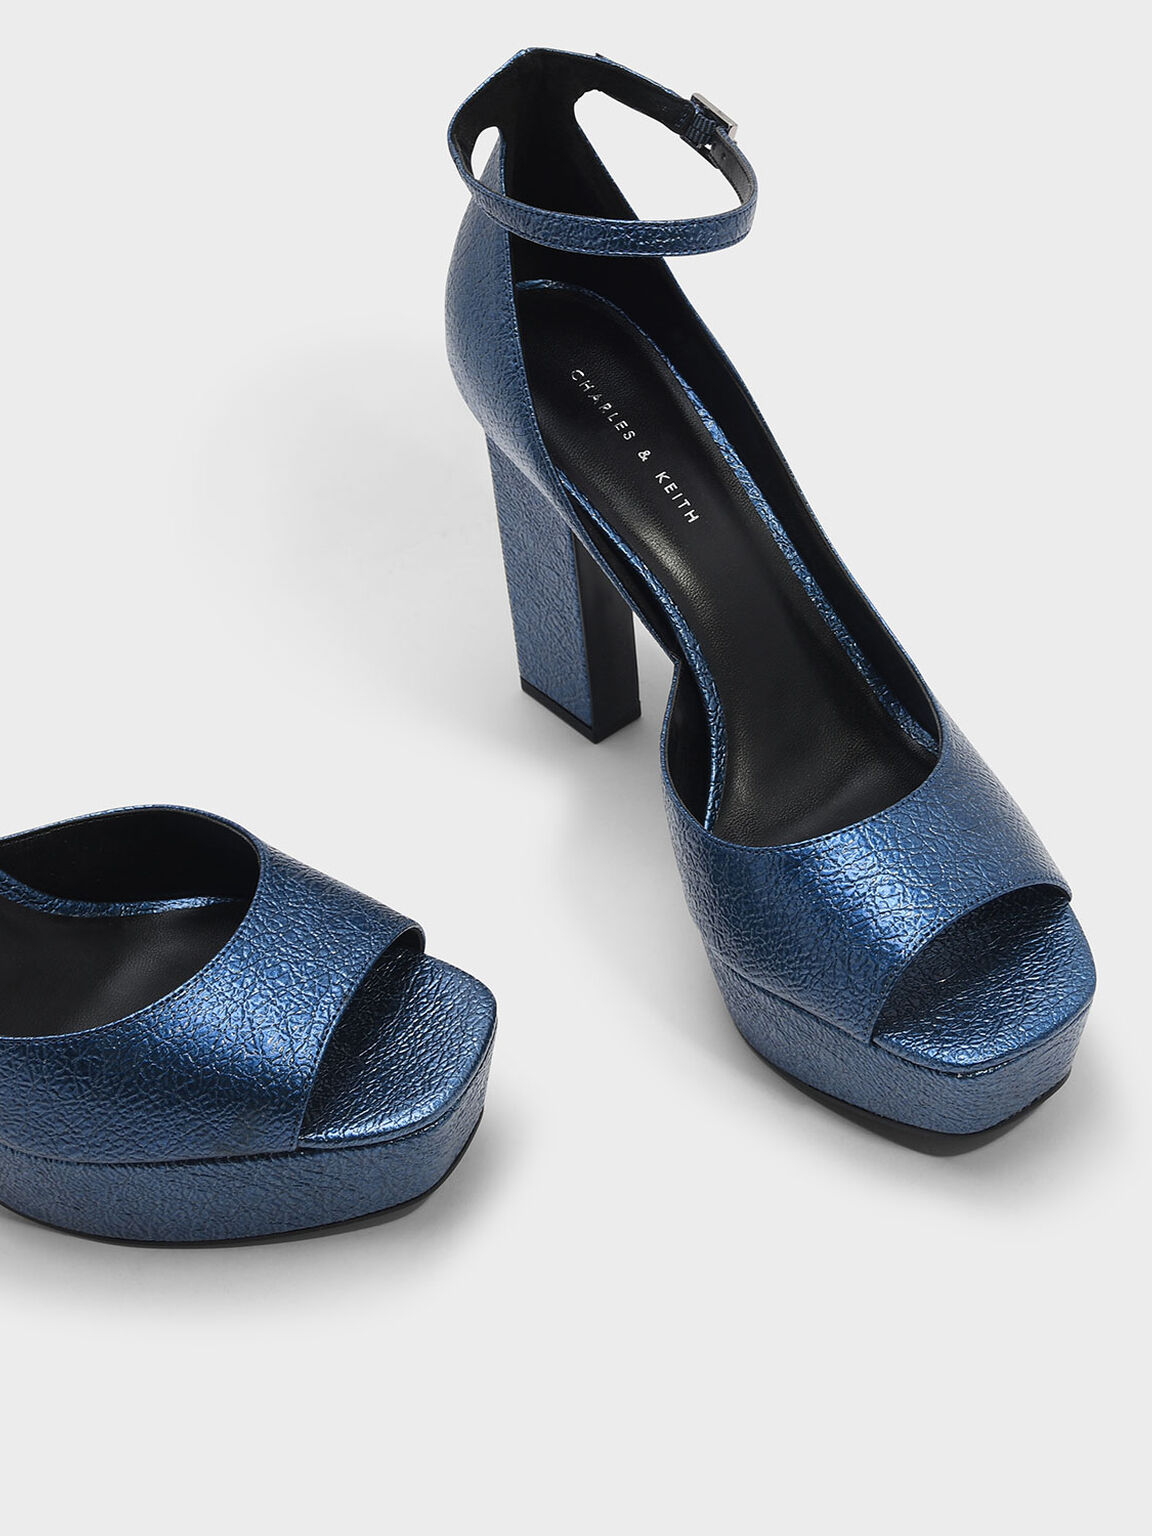 Classic Platform Sandals, Dark Blue, hi-res